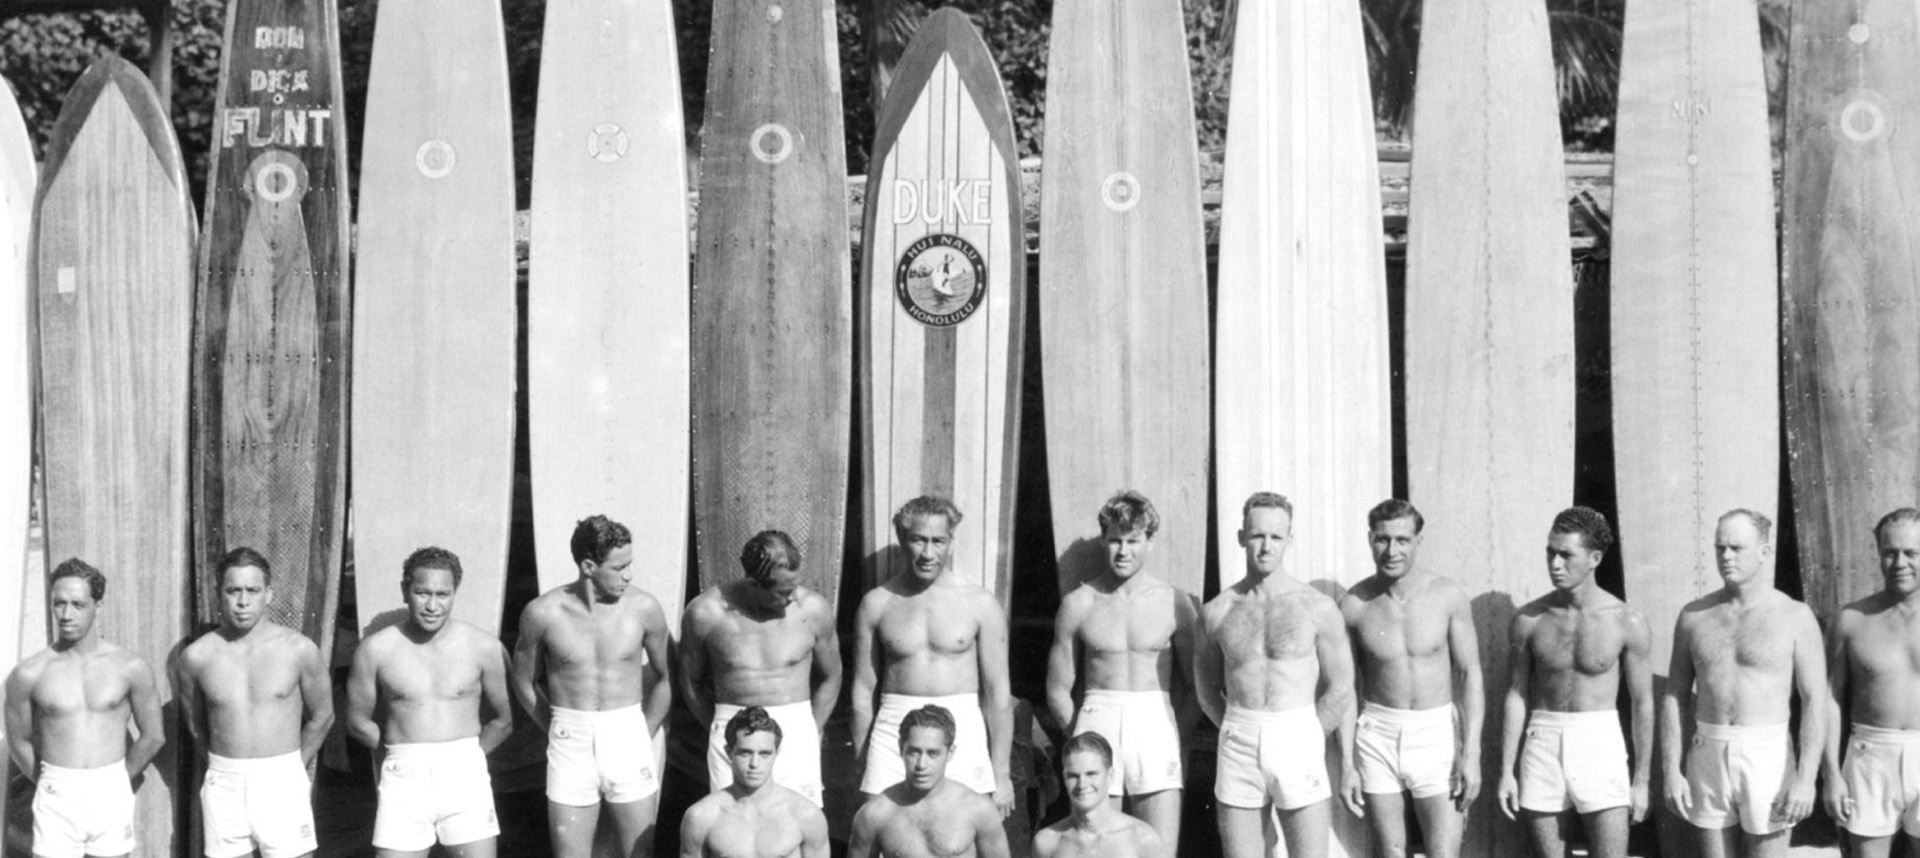 A group of surfers with Duke